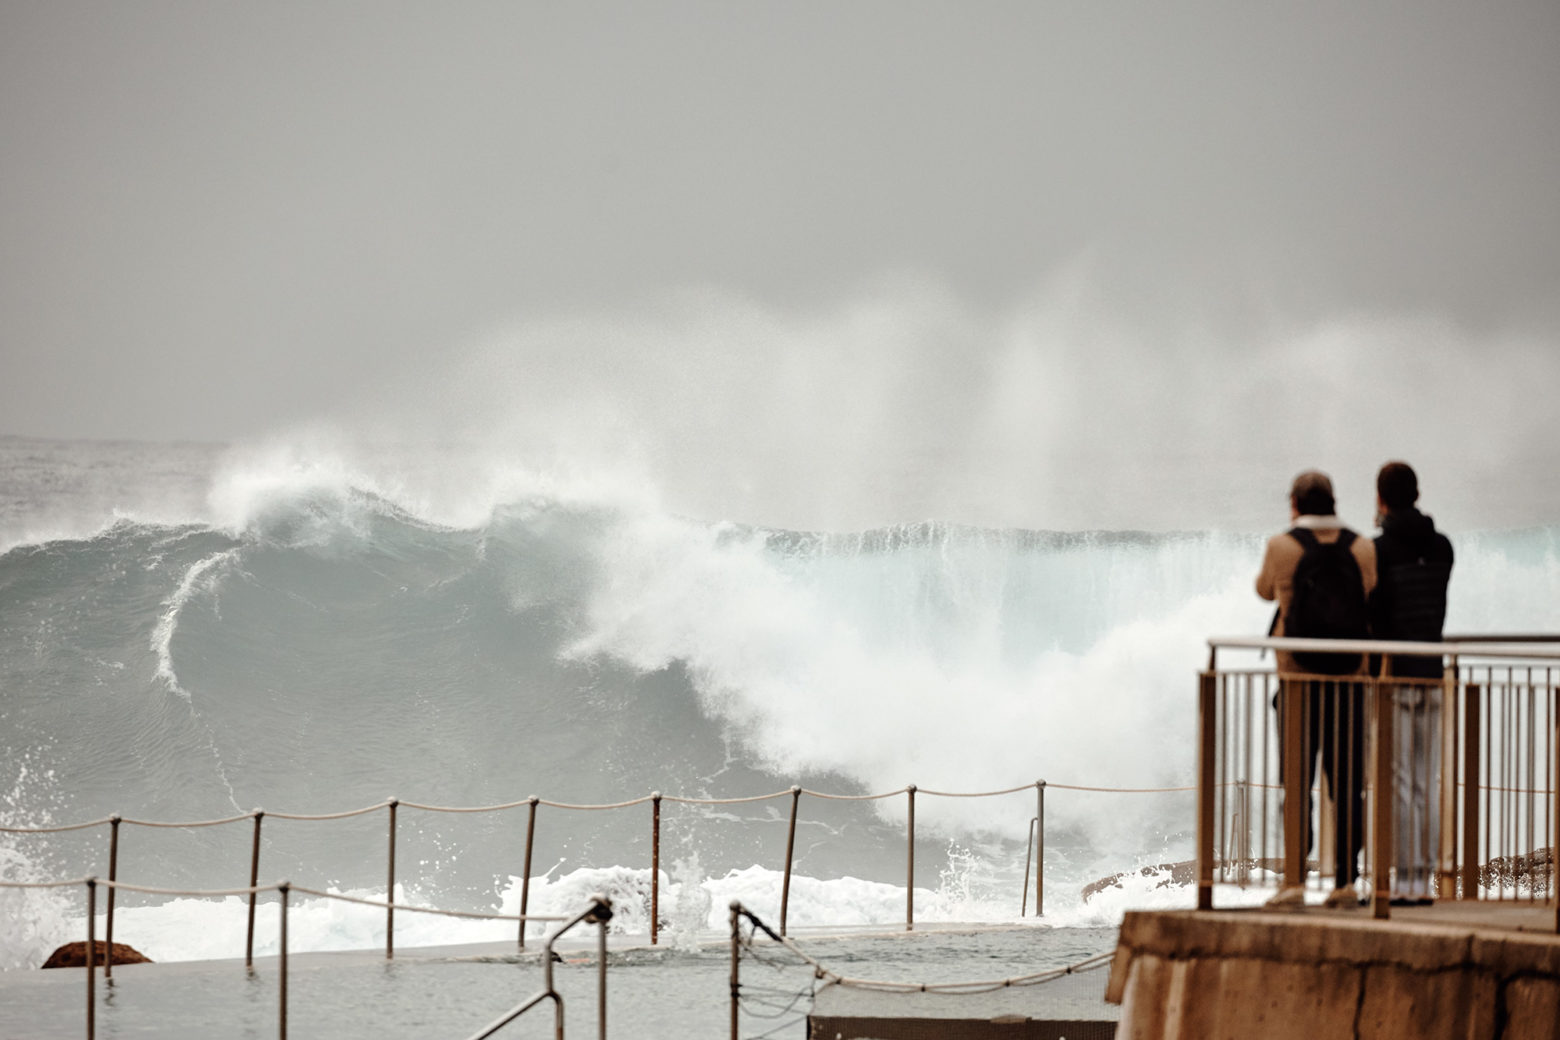 A large chunk smashes against the pool at Bronte